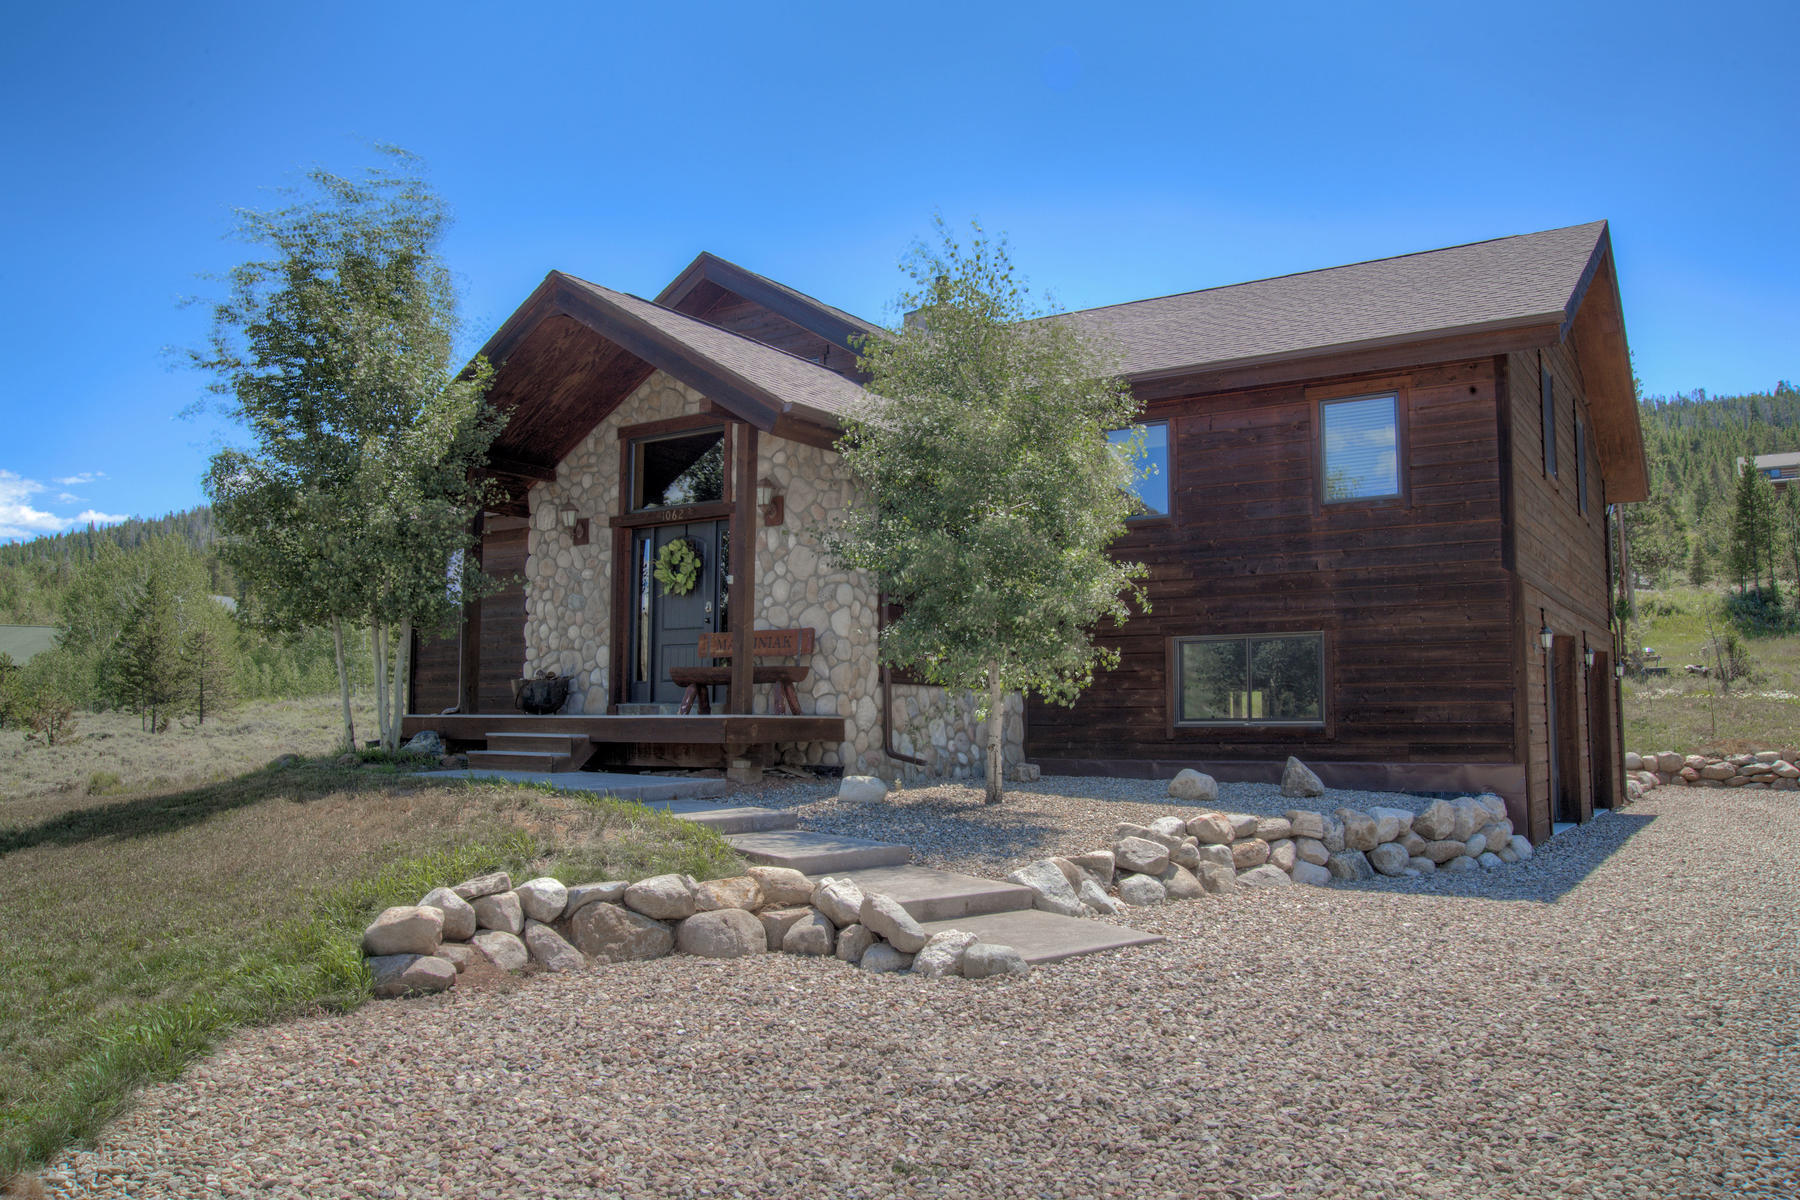 Single Family Homes for Sale at Rare 6 Bedroom Home 1062 GCR 8952 Granby, Colorado 80446 United States